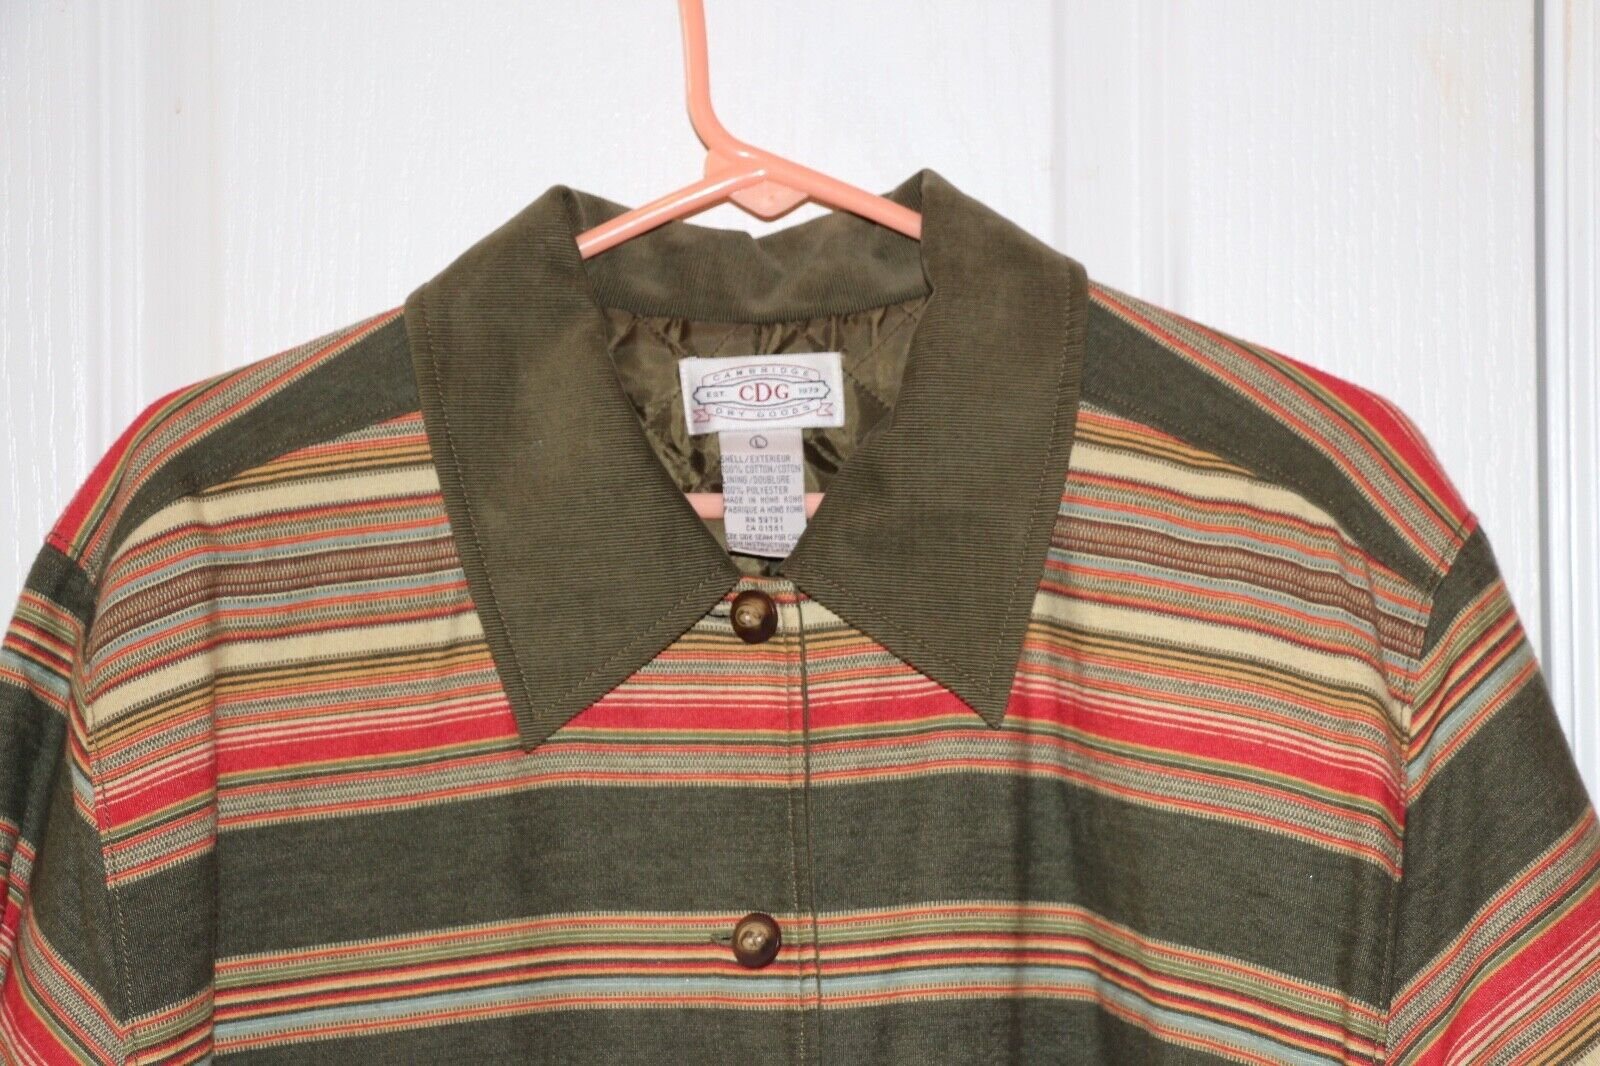 Cambridge Dry Goods Lined Jacket Size Large - image 3